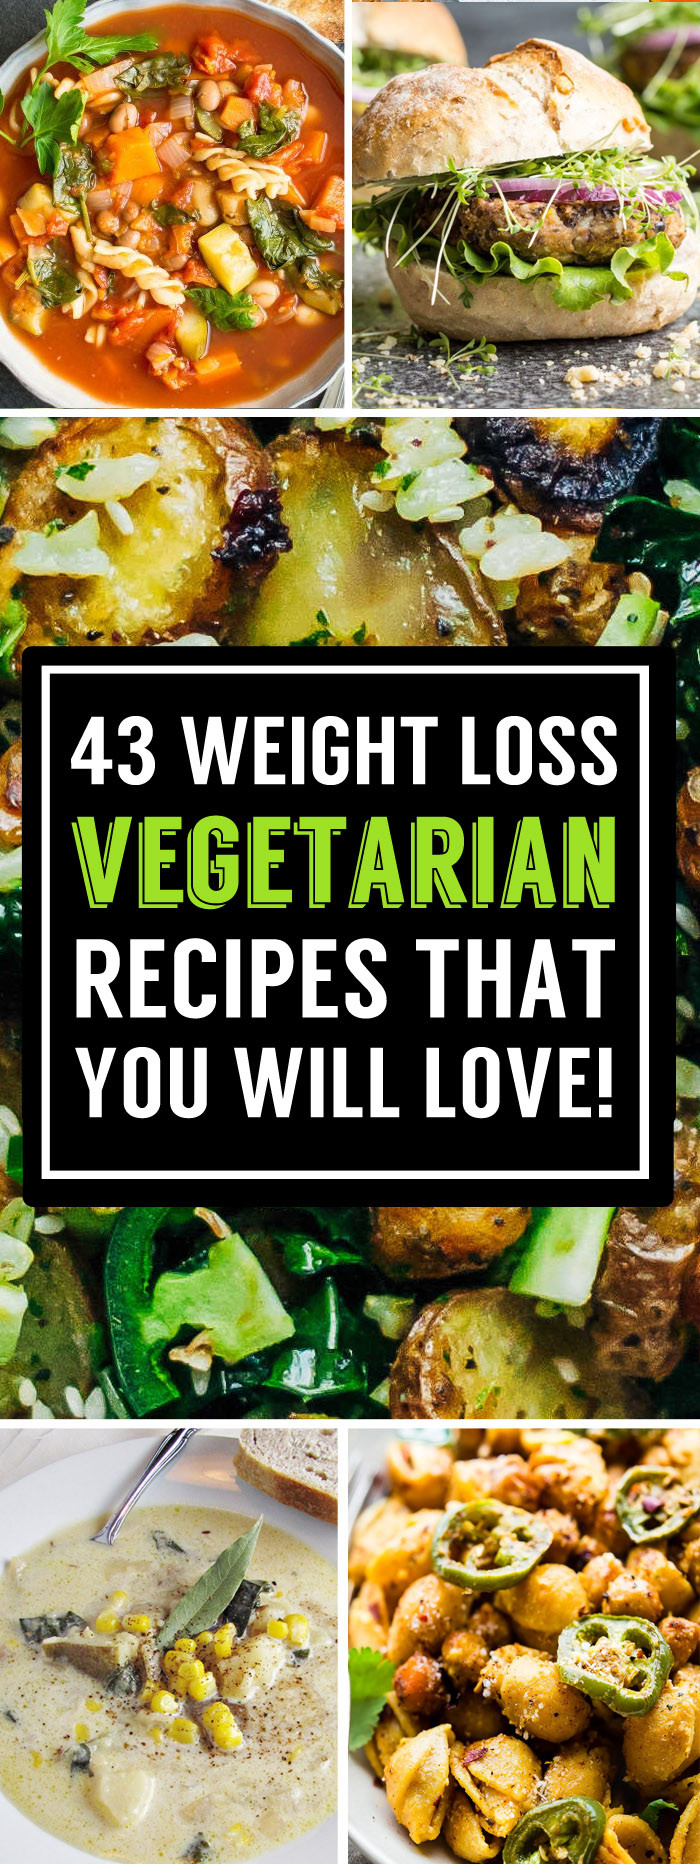 Delicious Healthy Vegetarian Recipes  43 Delicious Ve arian Recipes That Can Help Boost Your